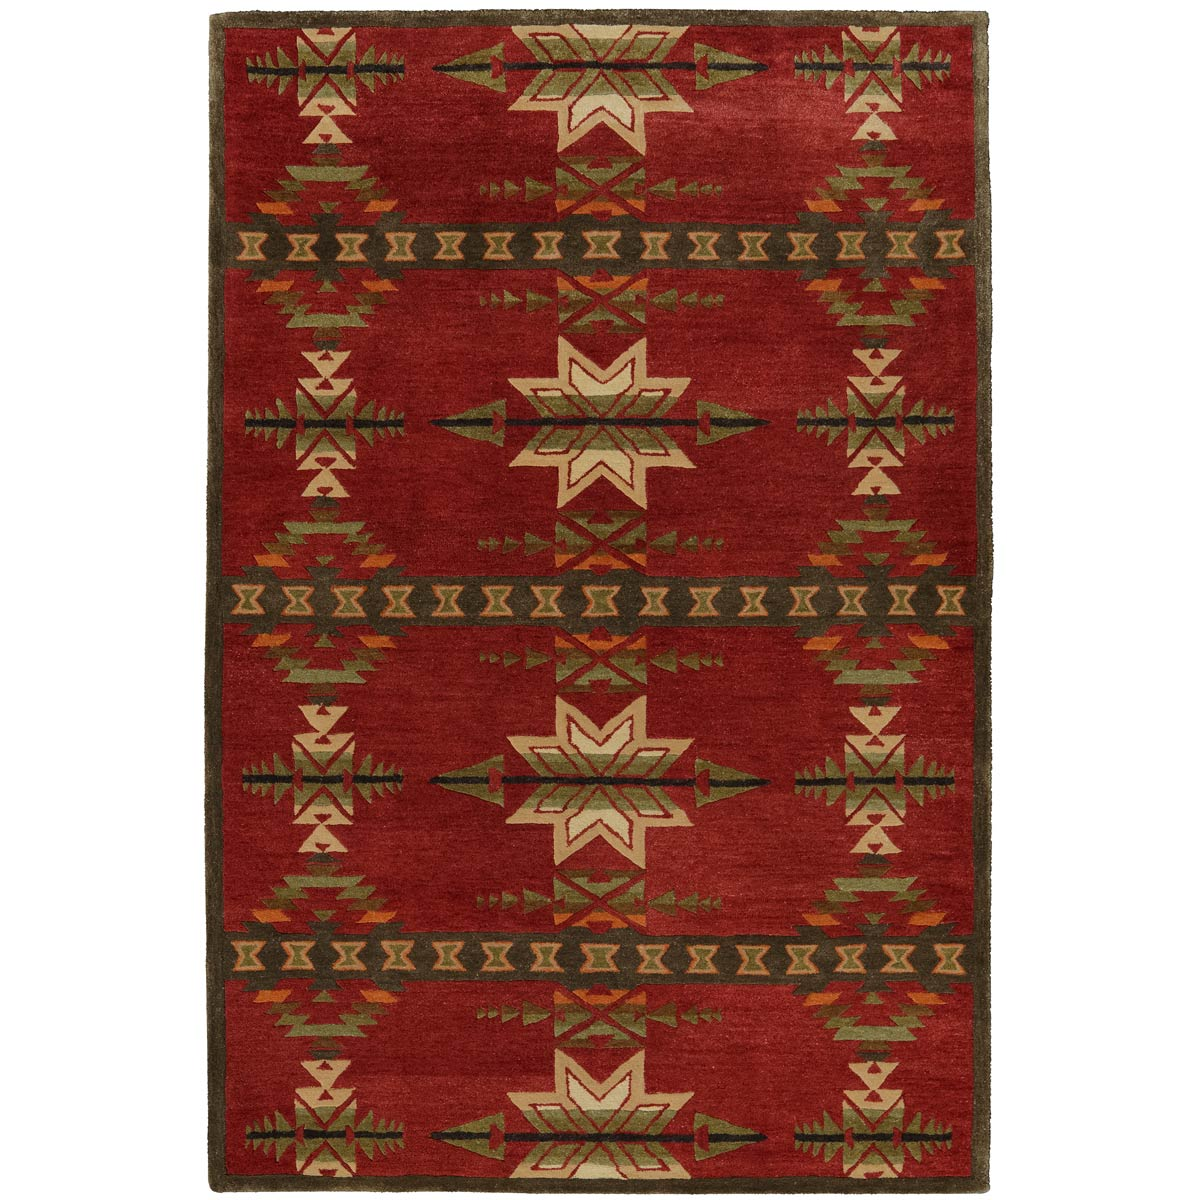 Gatekeeper Red Rug - 6 x 9